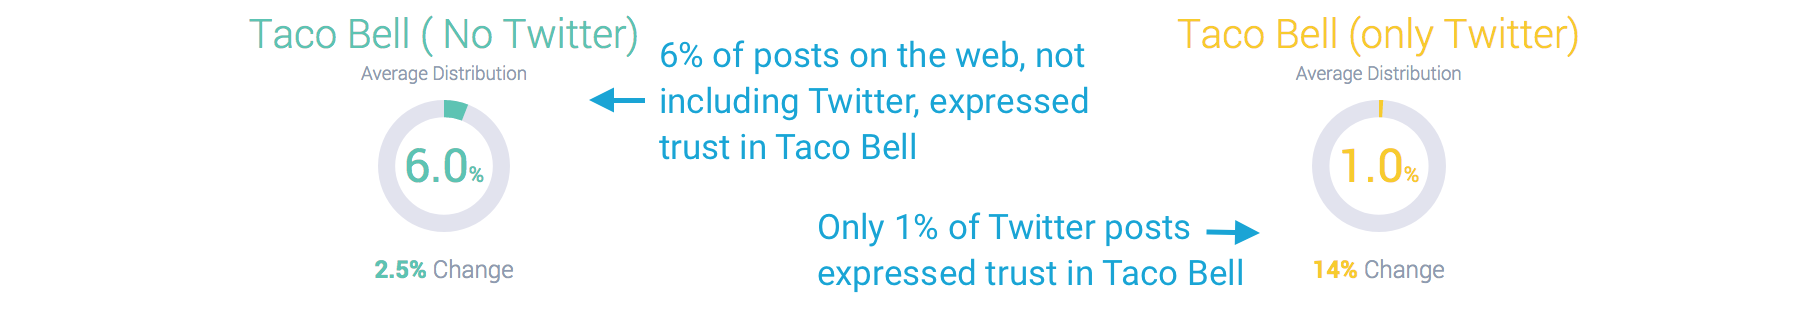 Social listening data on Taco Bell TRUST no twitter vs. only twitter